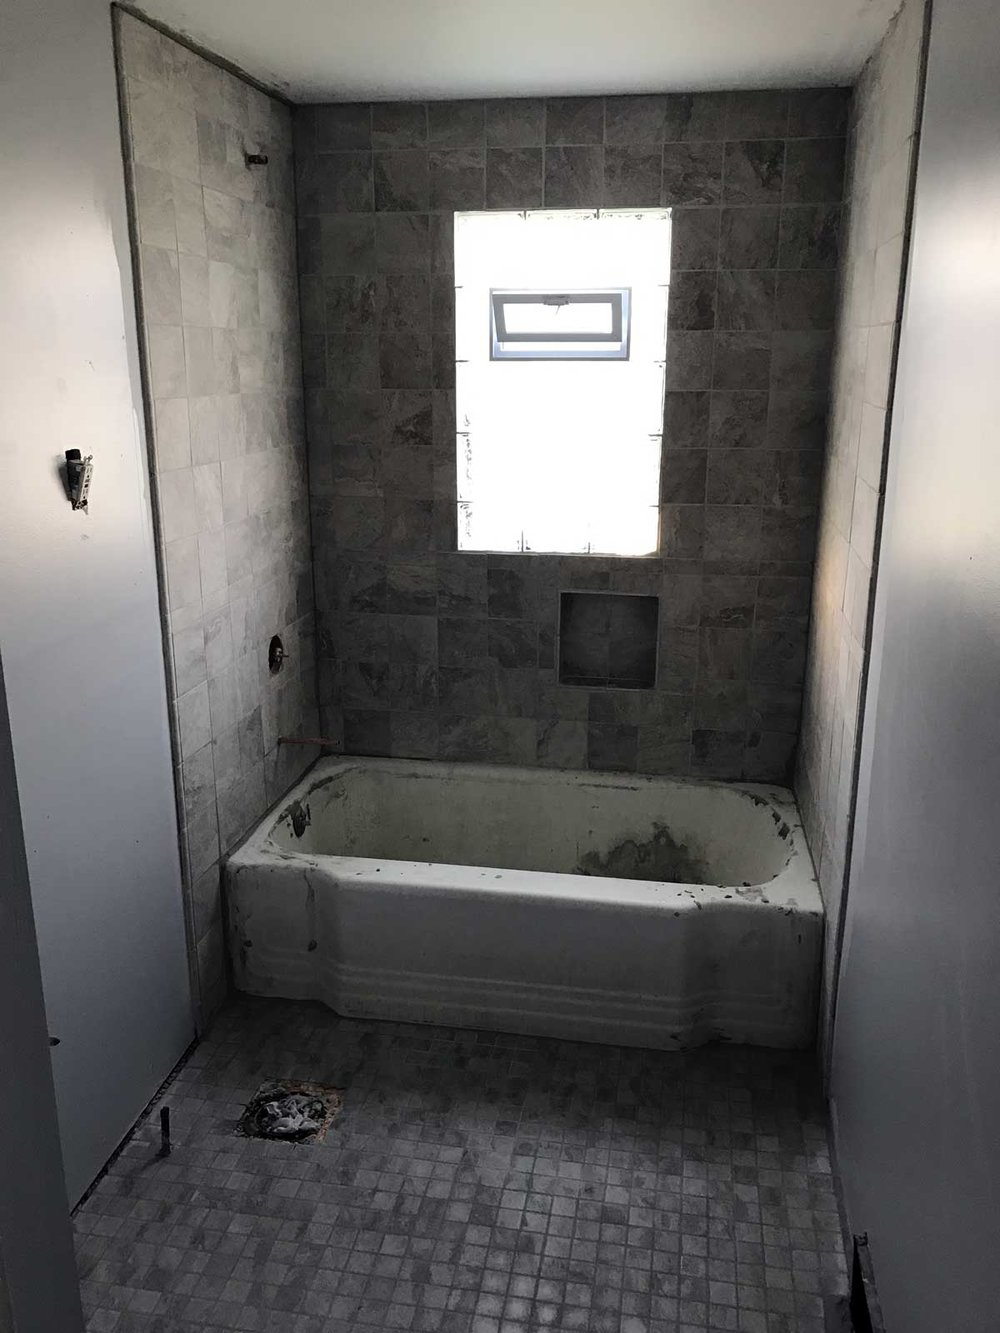 15-Day-Bathroom-Renovation-25.jpg